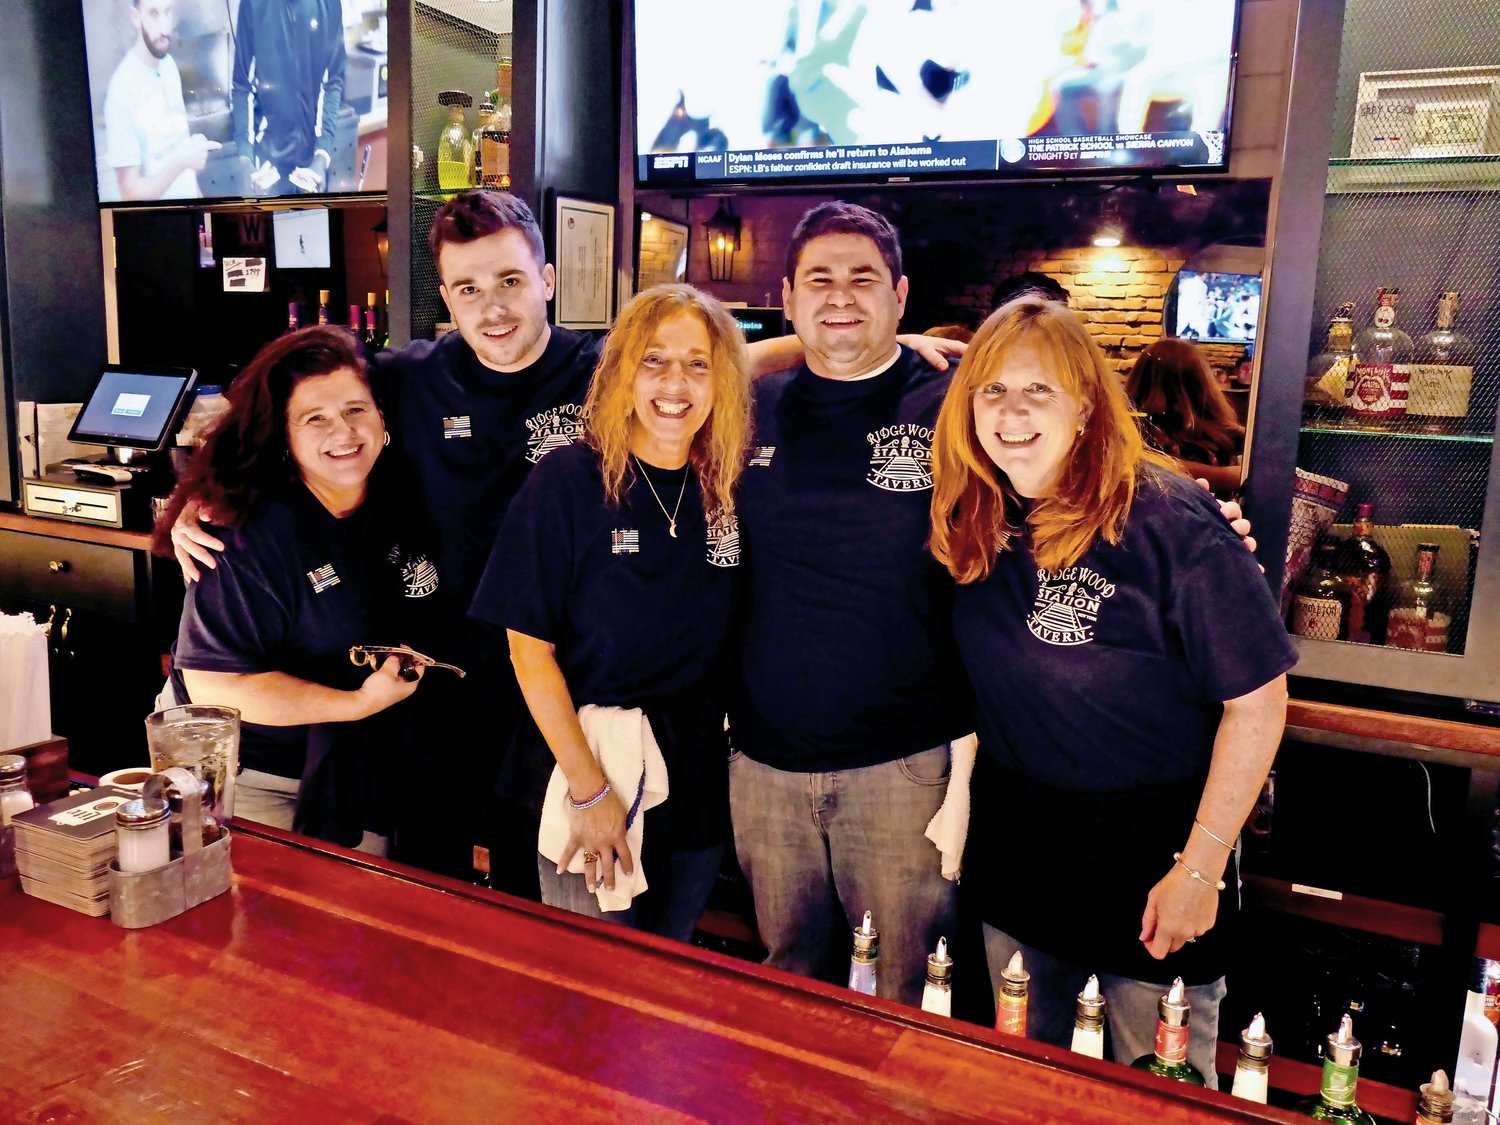 Maureen Conklin, left, Lauren Dupkin Memisha and Liz Greco joined the Ridgewood Tavern bartenders to serve drinks at the Back the Blue fundraiser for widows and families of fallen police officers on Jan. 3.